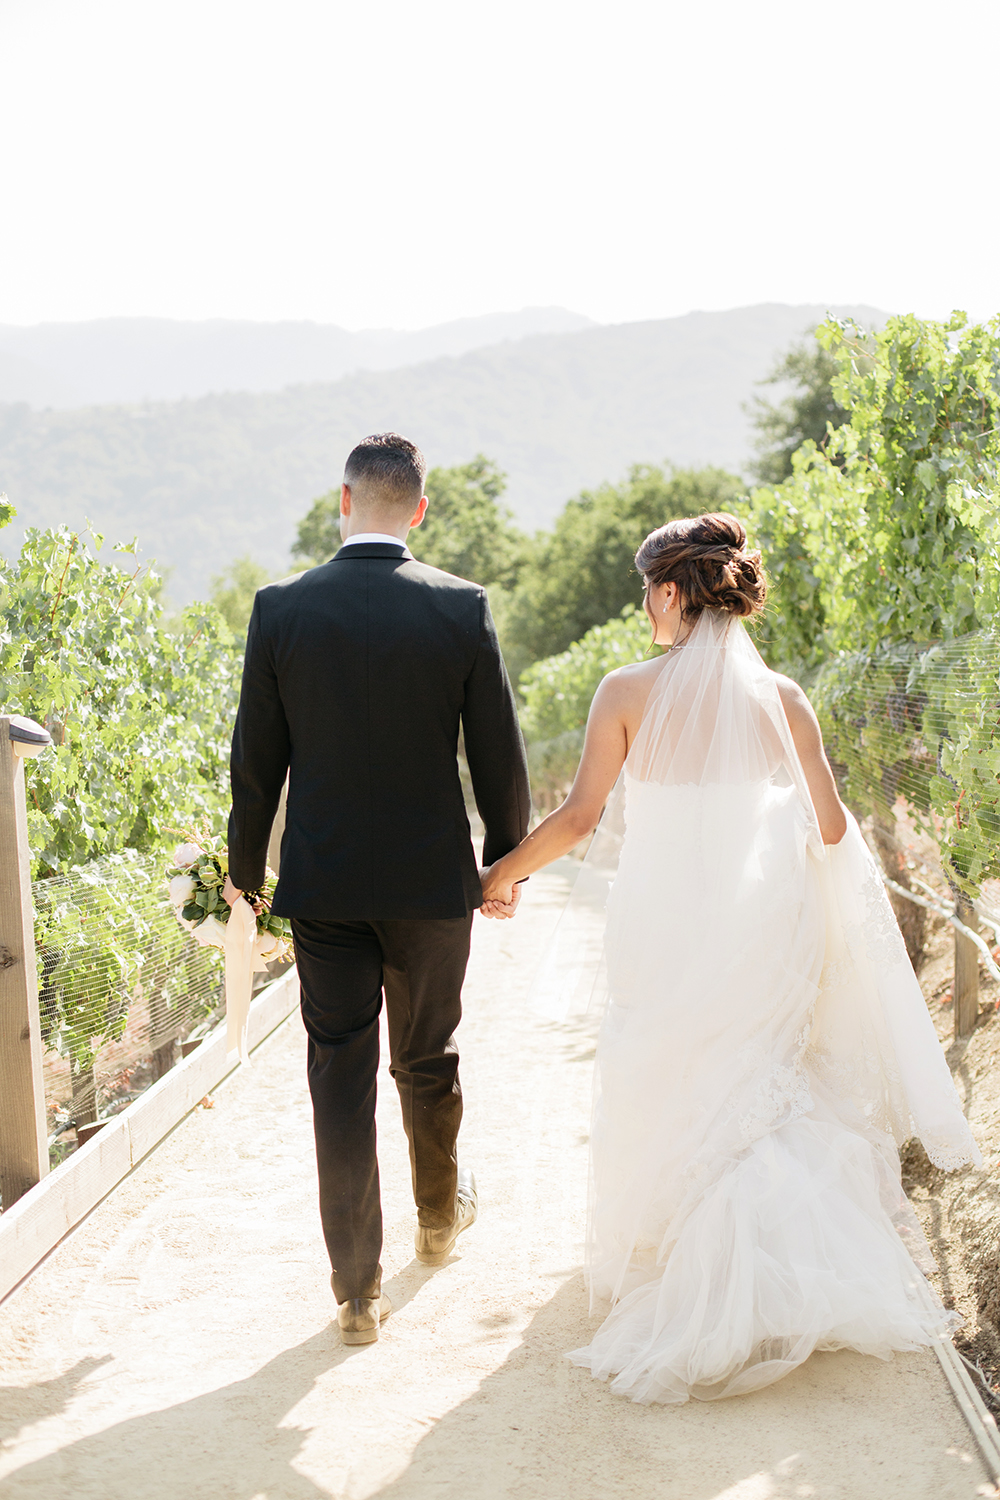 Bride and groom walking hand in hand to their wedding in Saratoga, California.